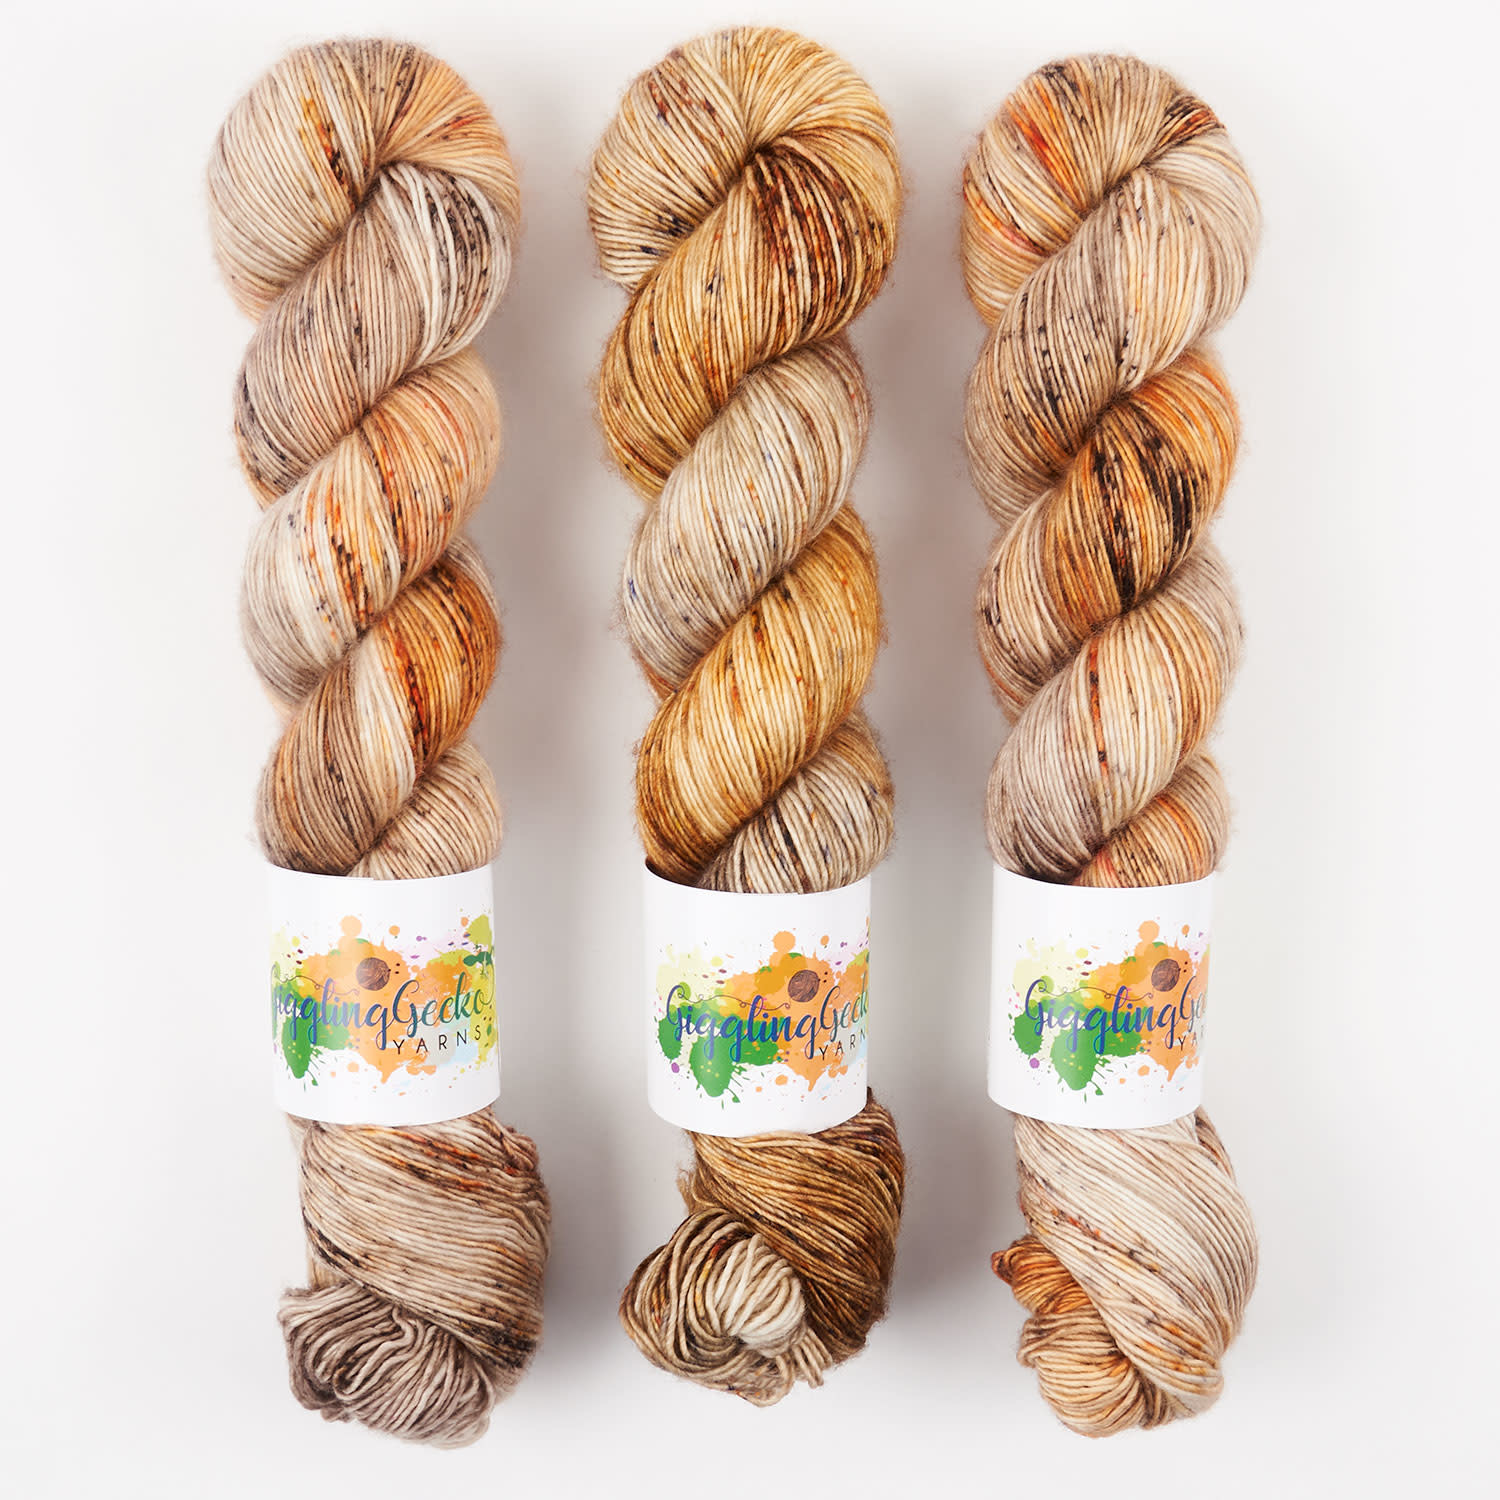 Giggling Gecko Yarns GGY - AUTUMN HARVEST